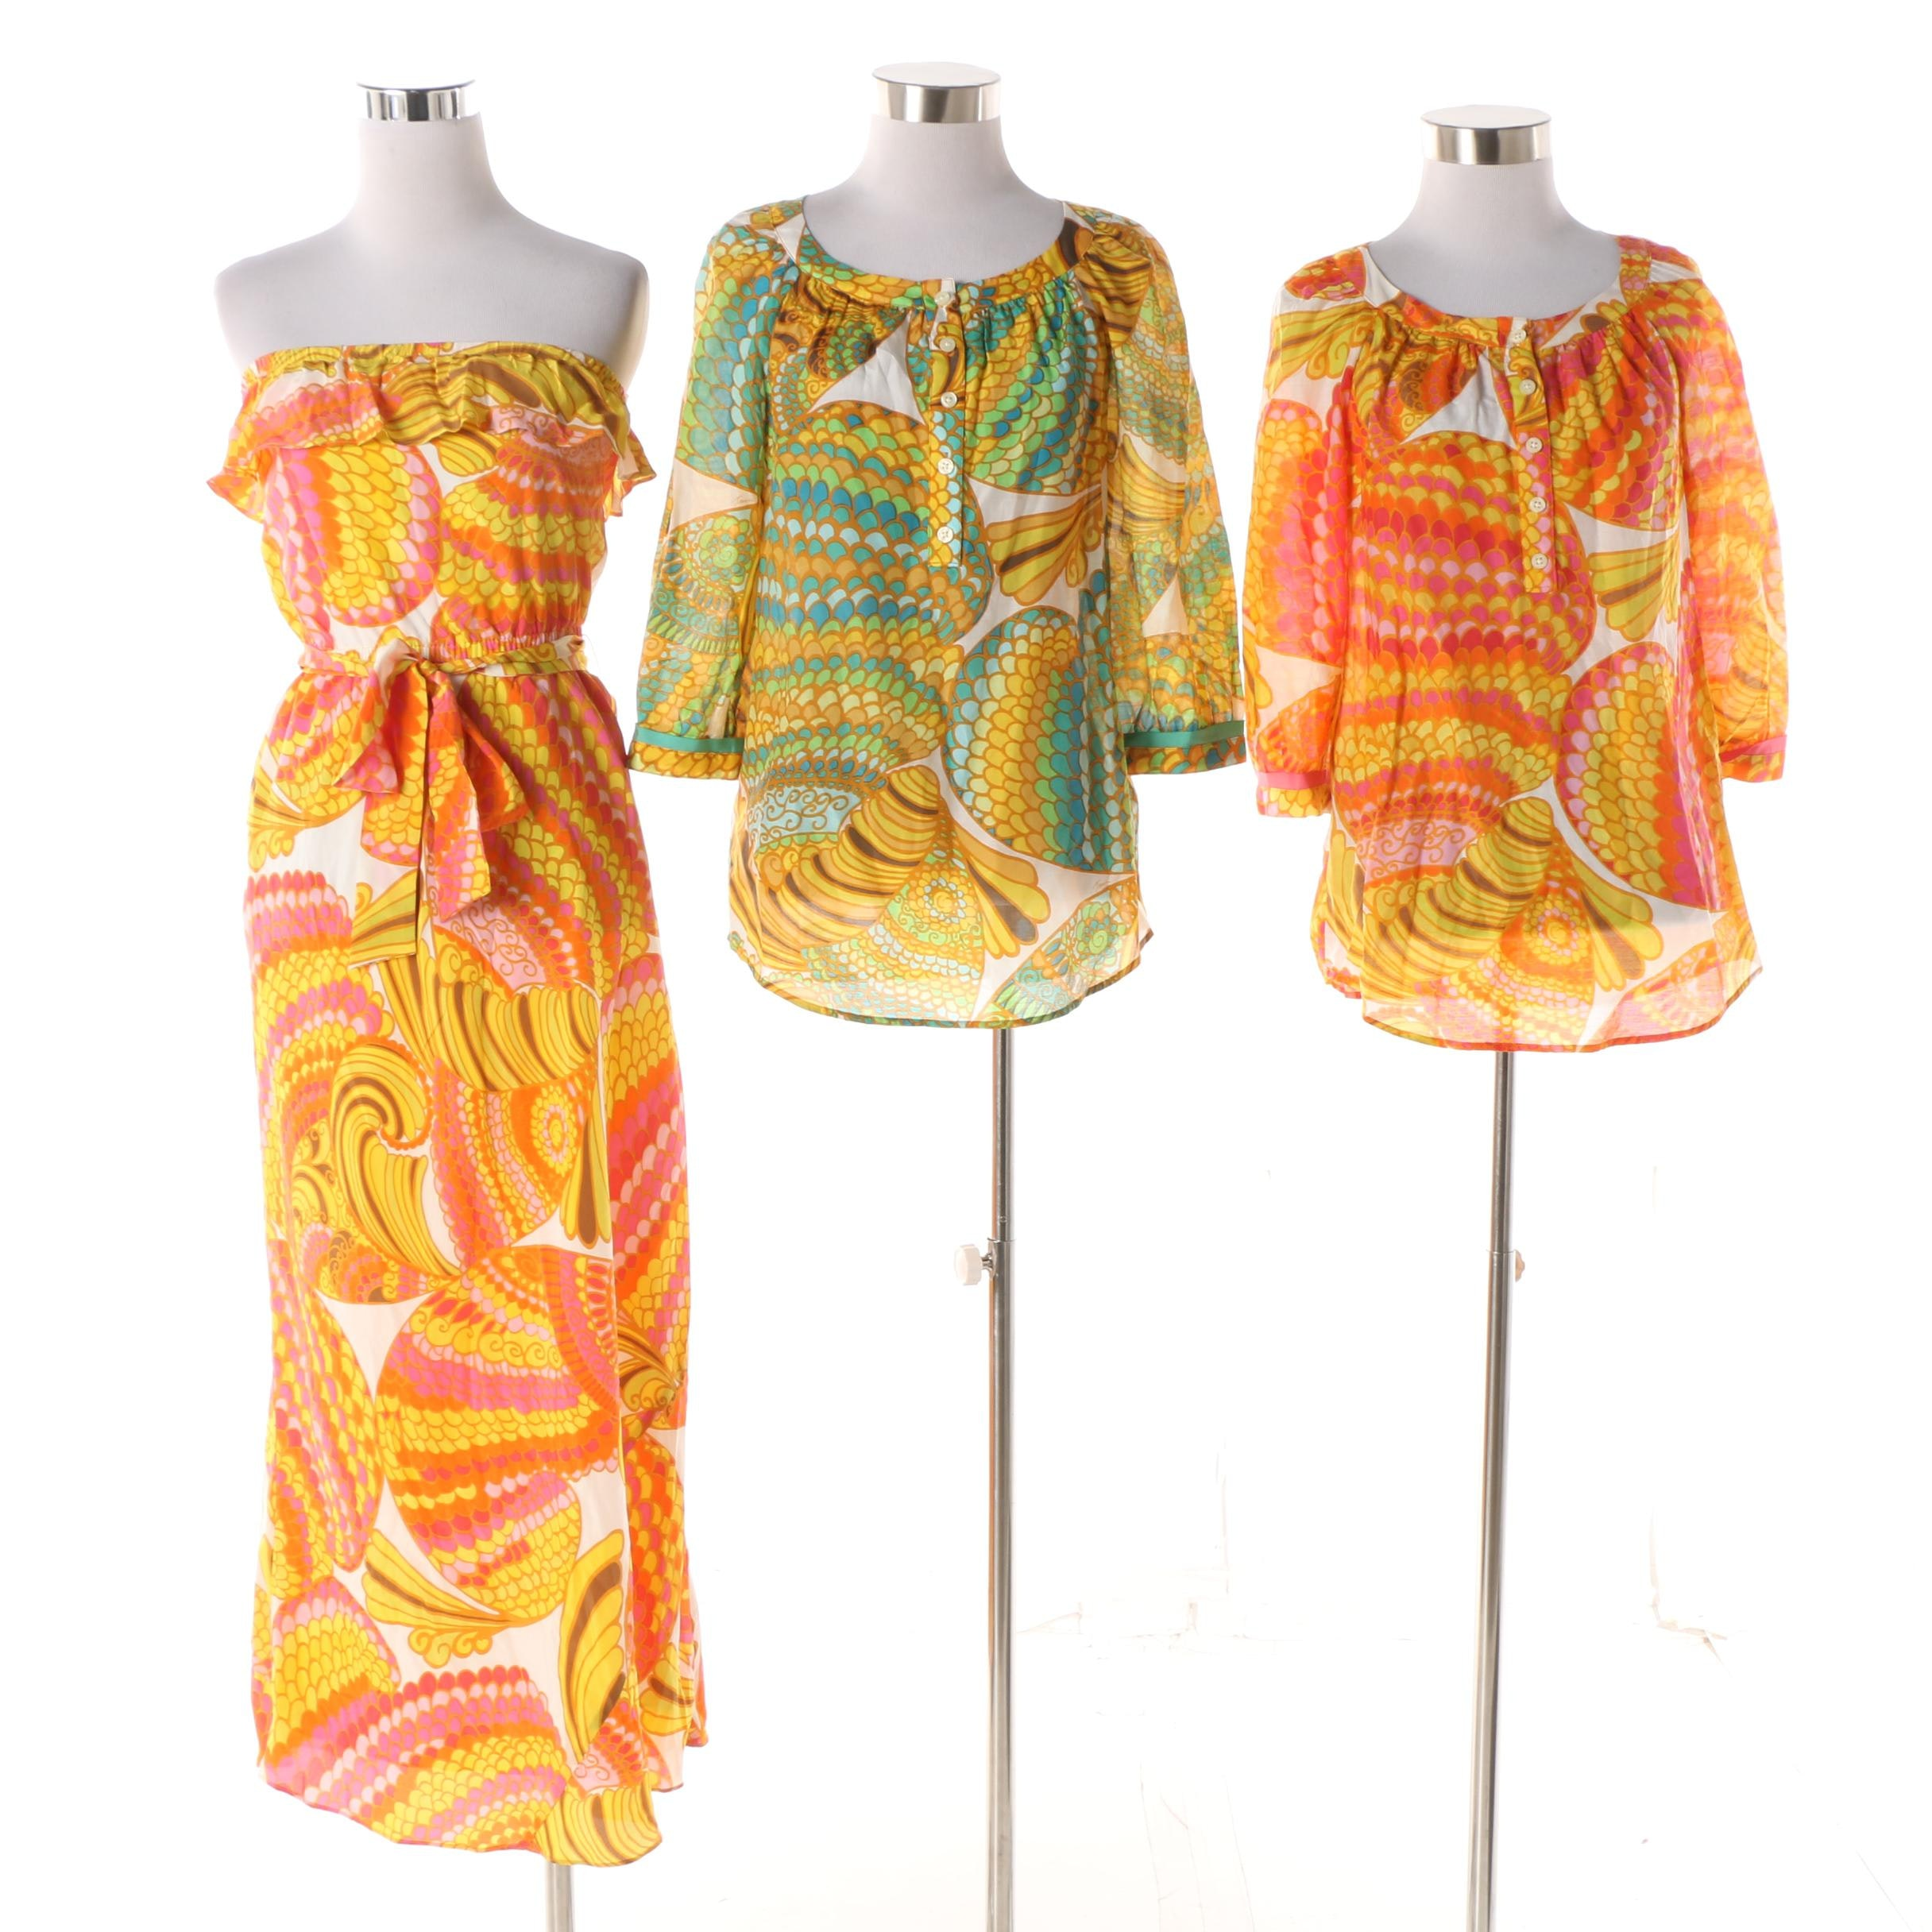 2012 Banana Republic Trina Turk Collection Printed Maxi Dress and Blouses